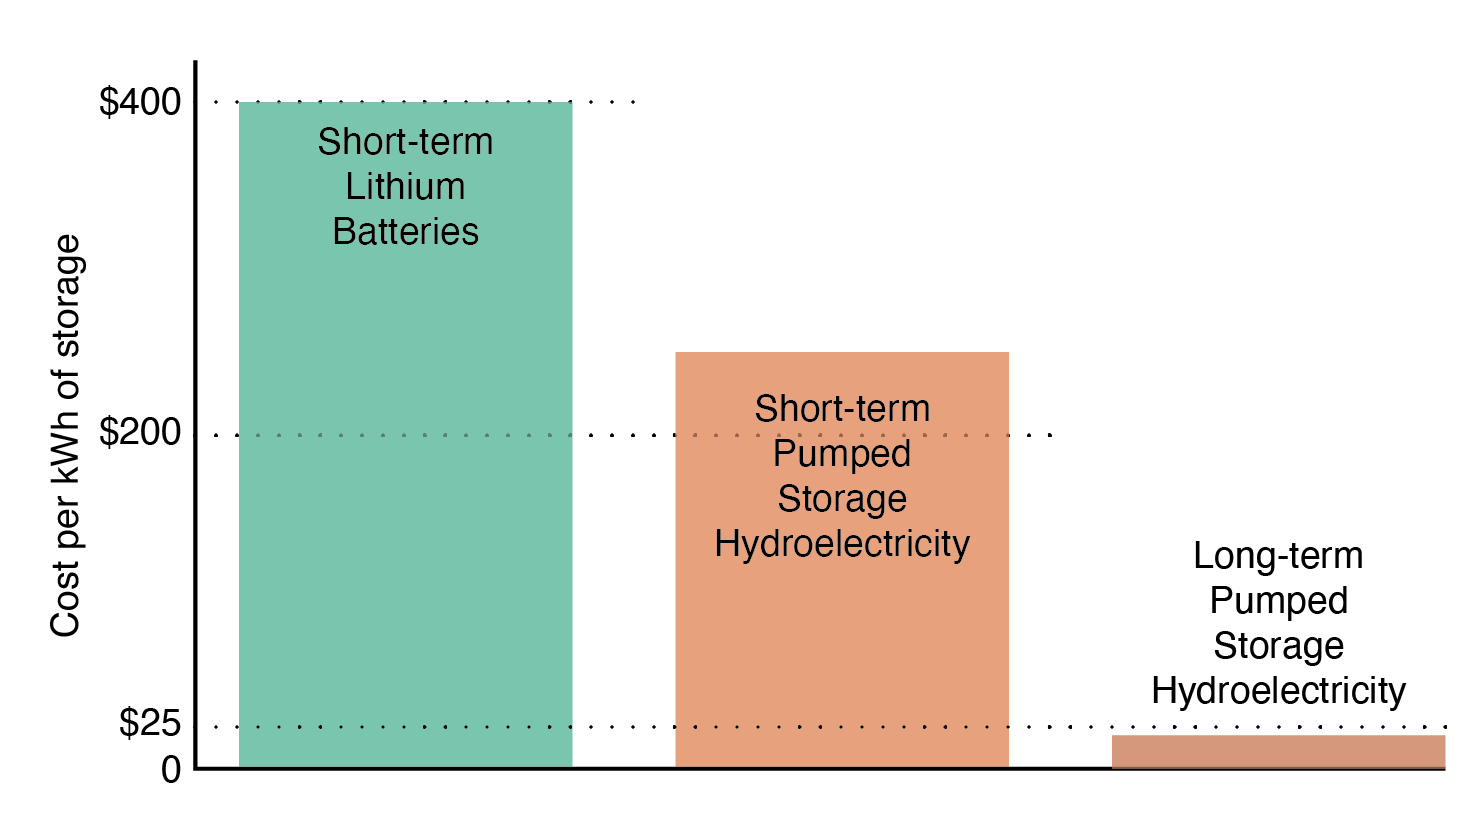 A graph showing the comparative costs of different energy storage options